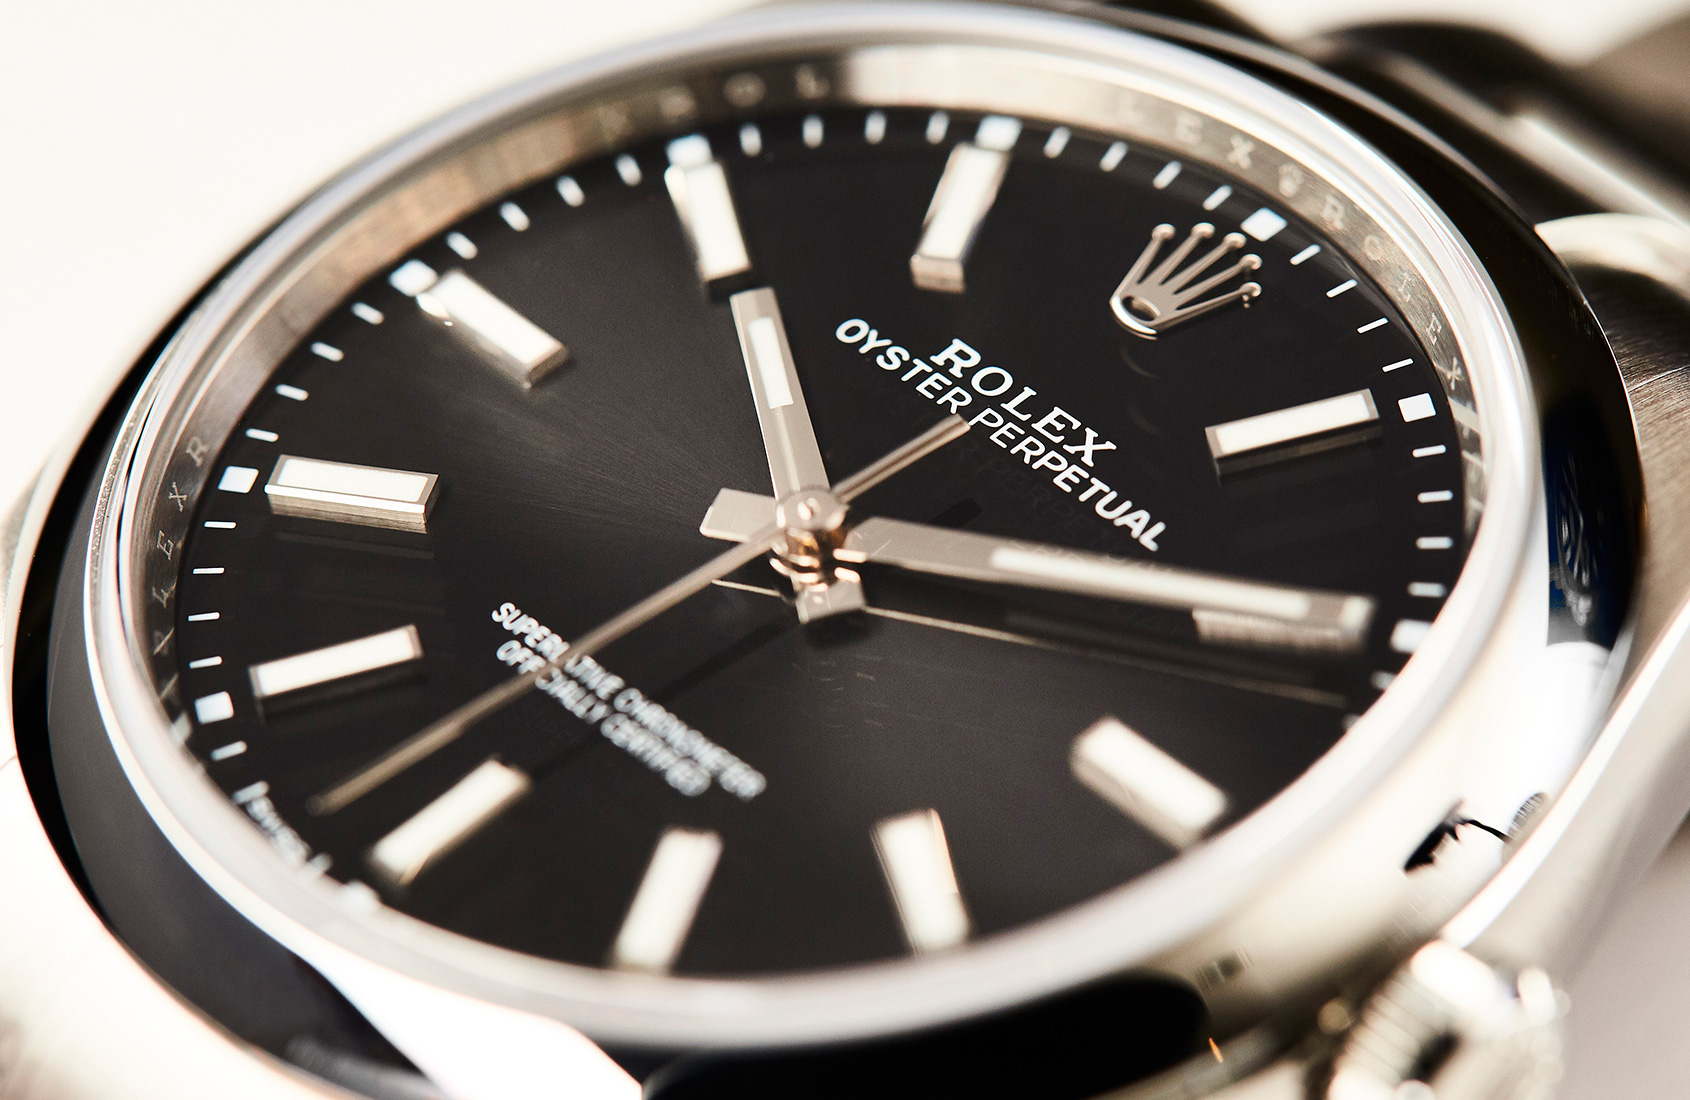 We Review The Rolex Oyster Perpetual 39 In Black And White